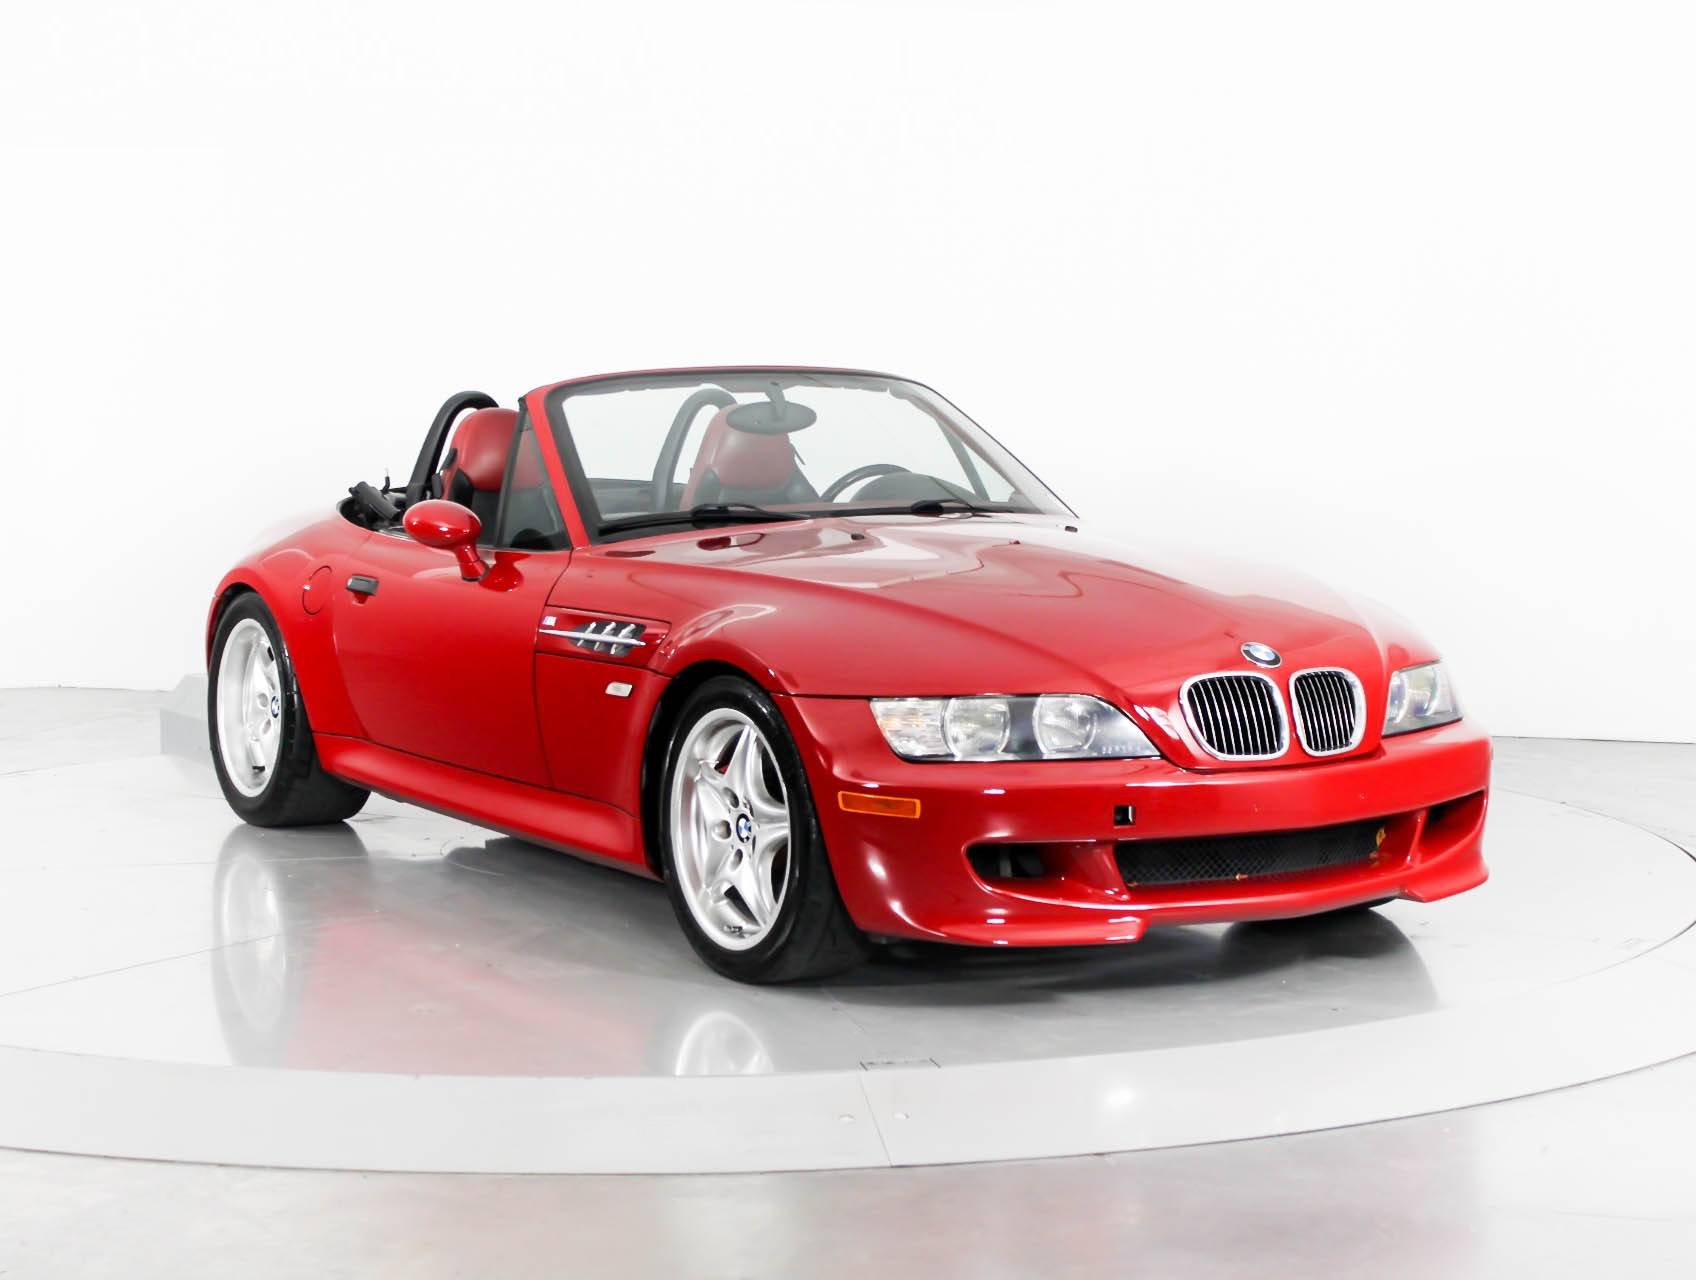 Used 2000 Bmw Z3 M Roadster Convertible For Sale In